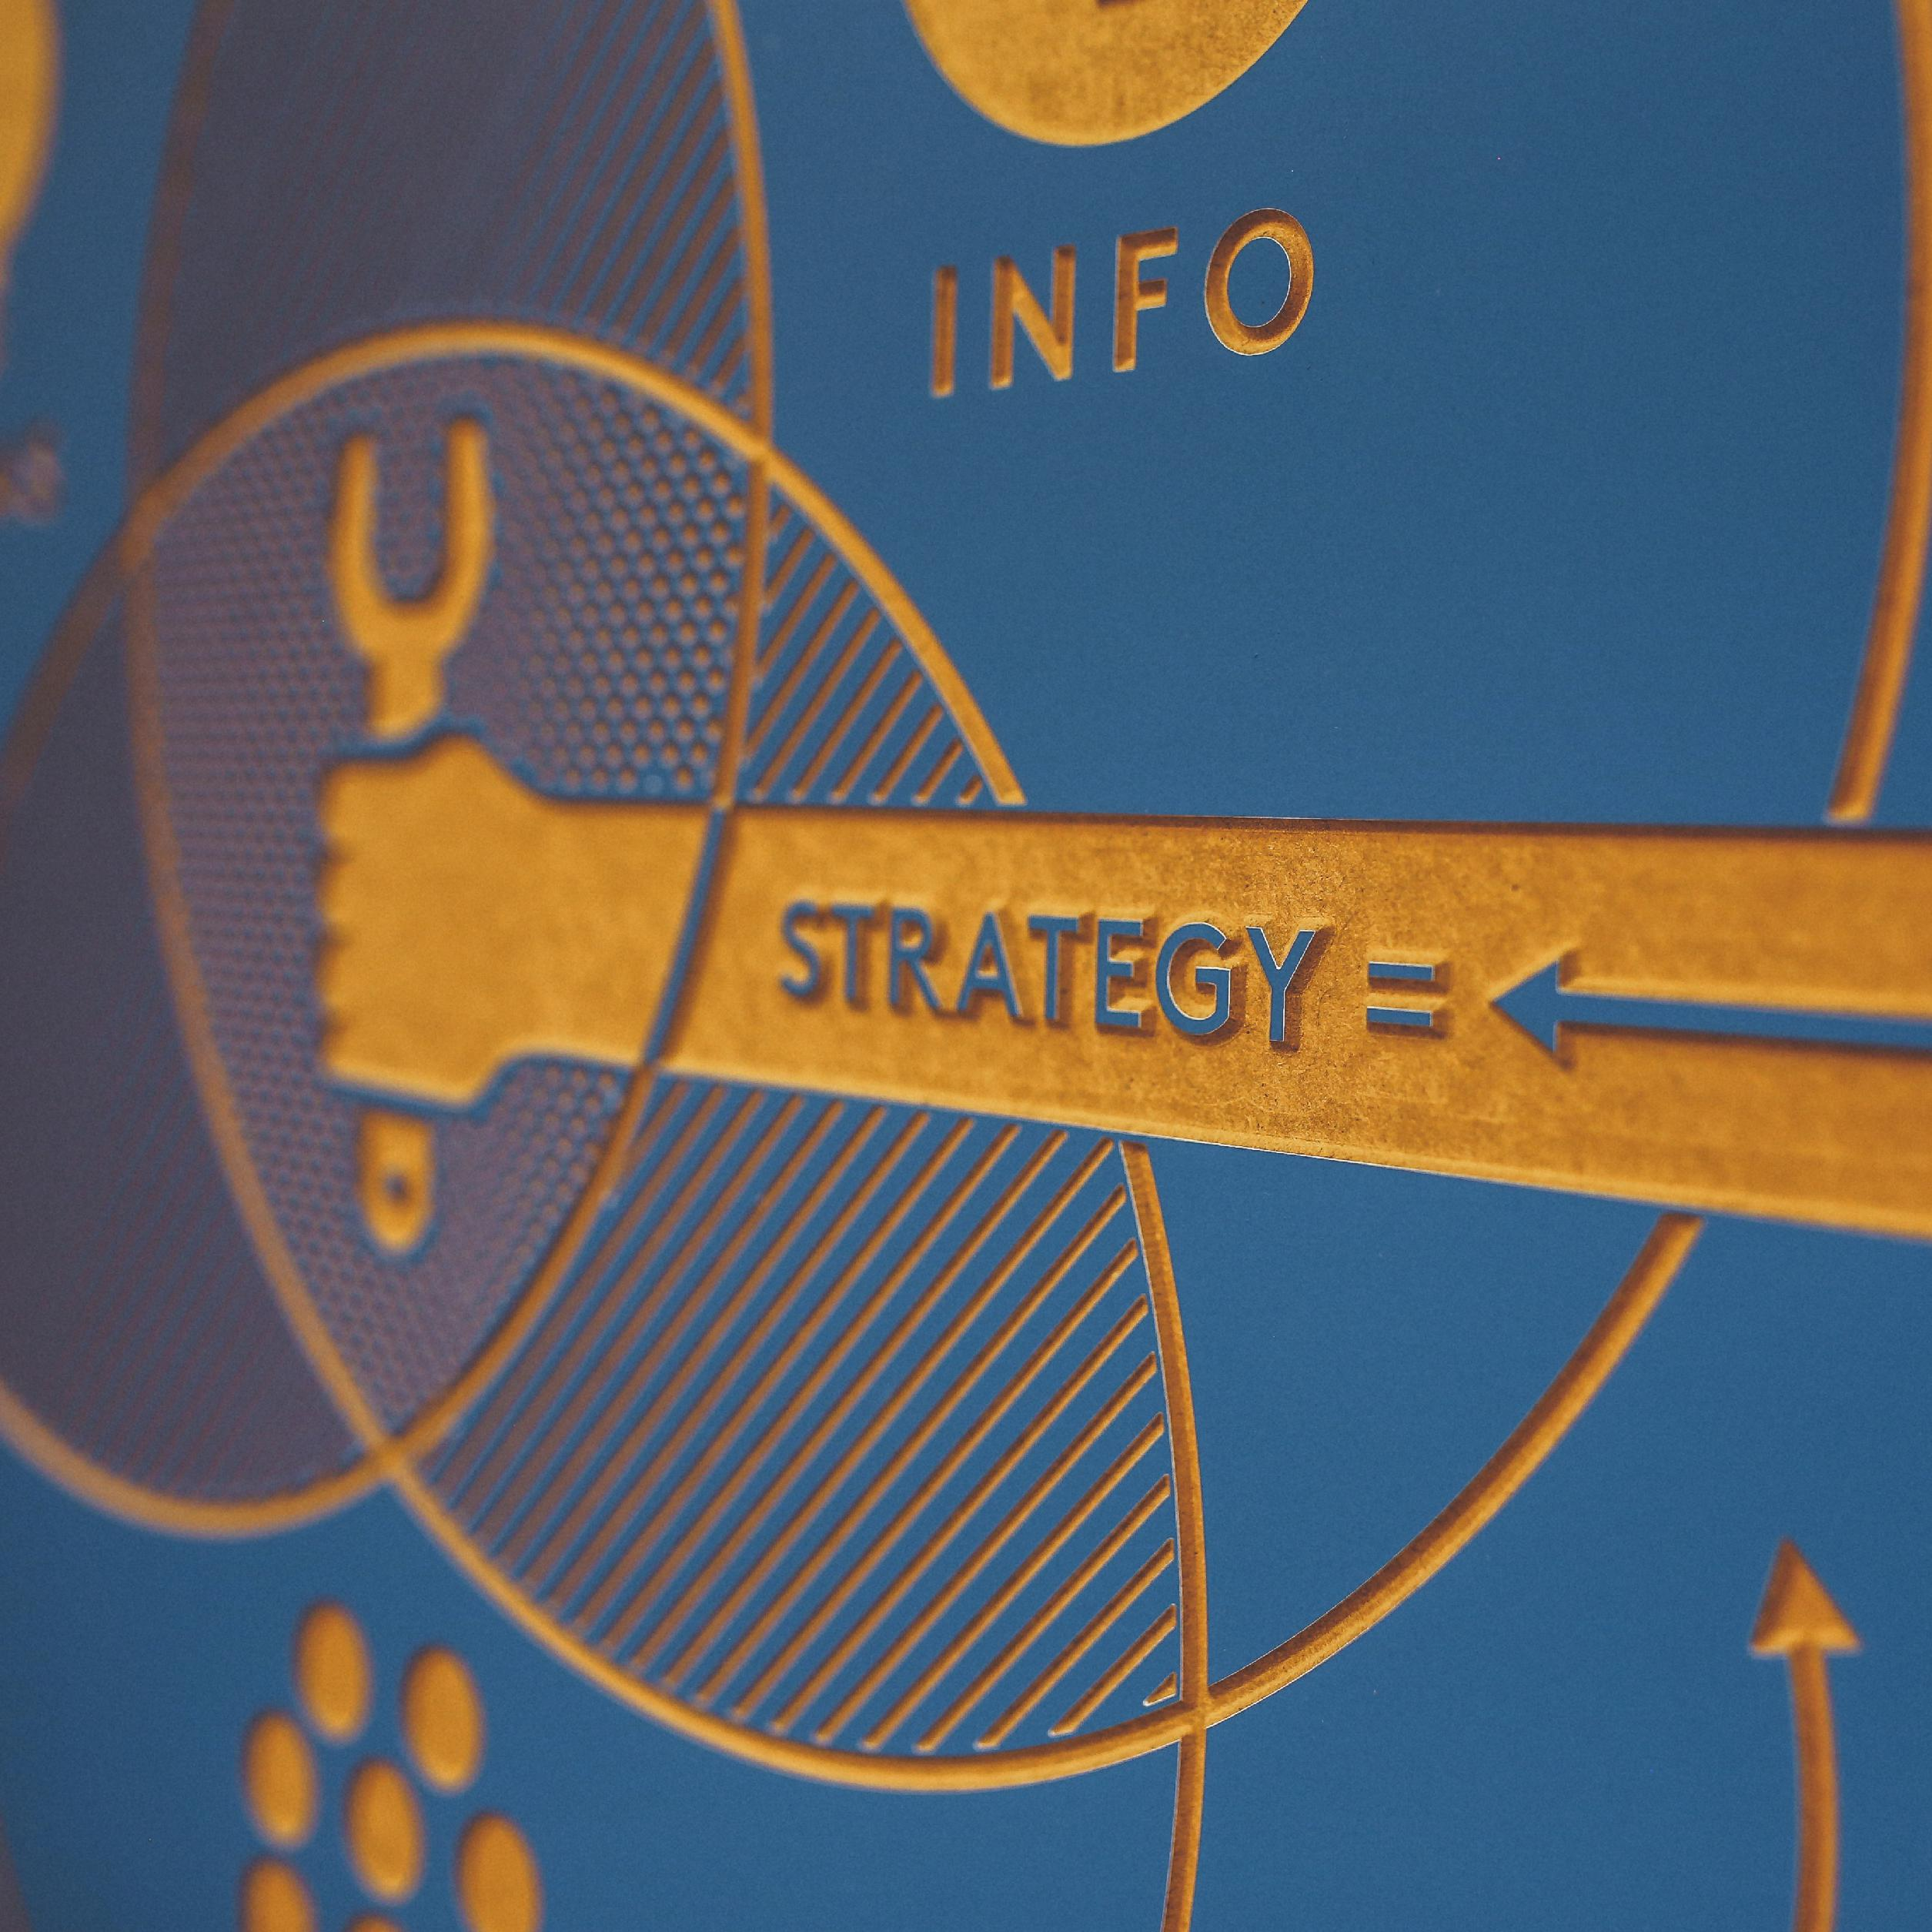 Image from internet showing diagram of strategy and info. Used on content marketing celebrity endorsement blog for Crosswind Media and Public Relations